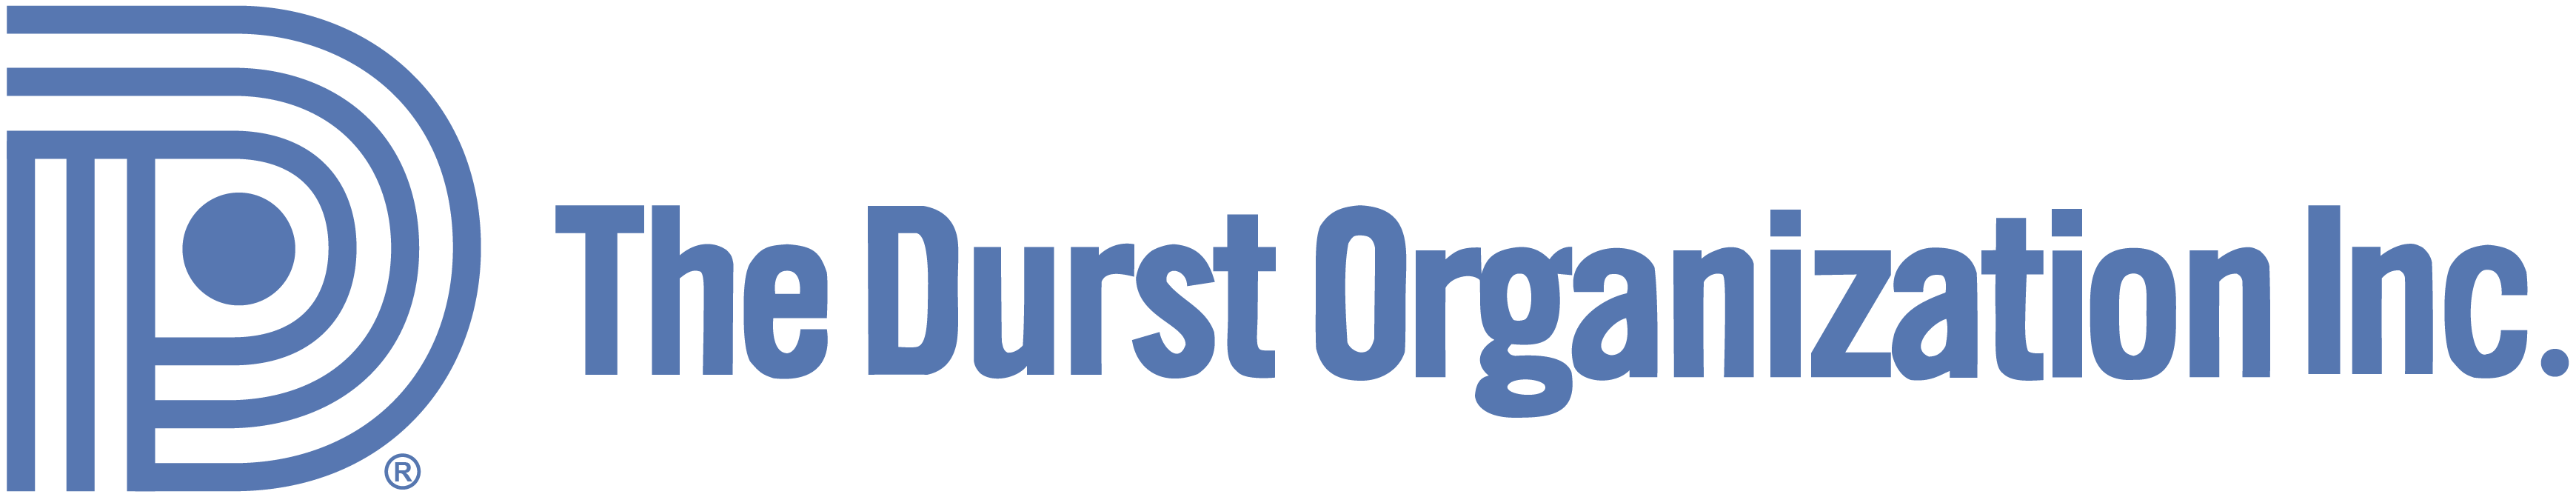 Durst Organization logo transparent